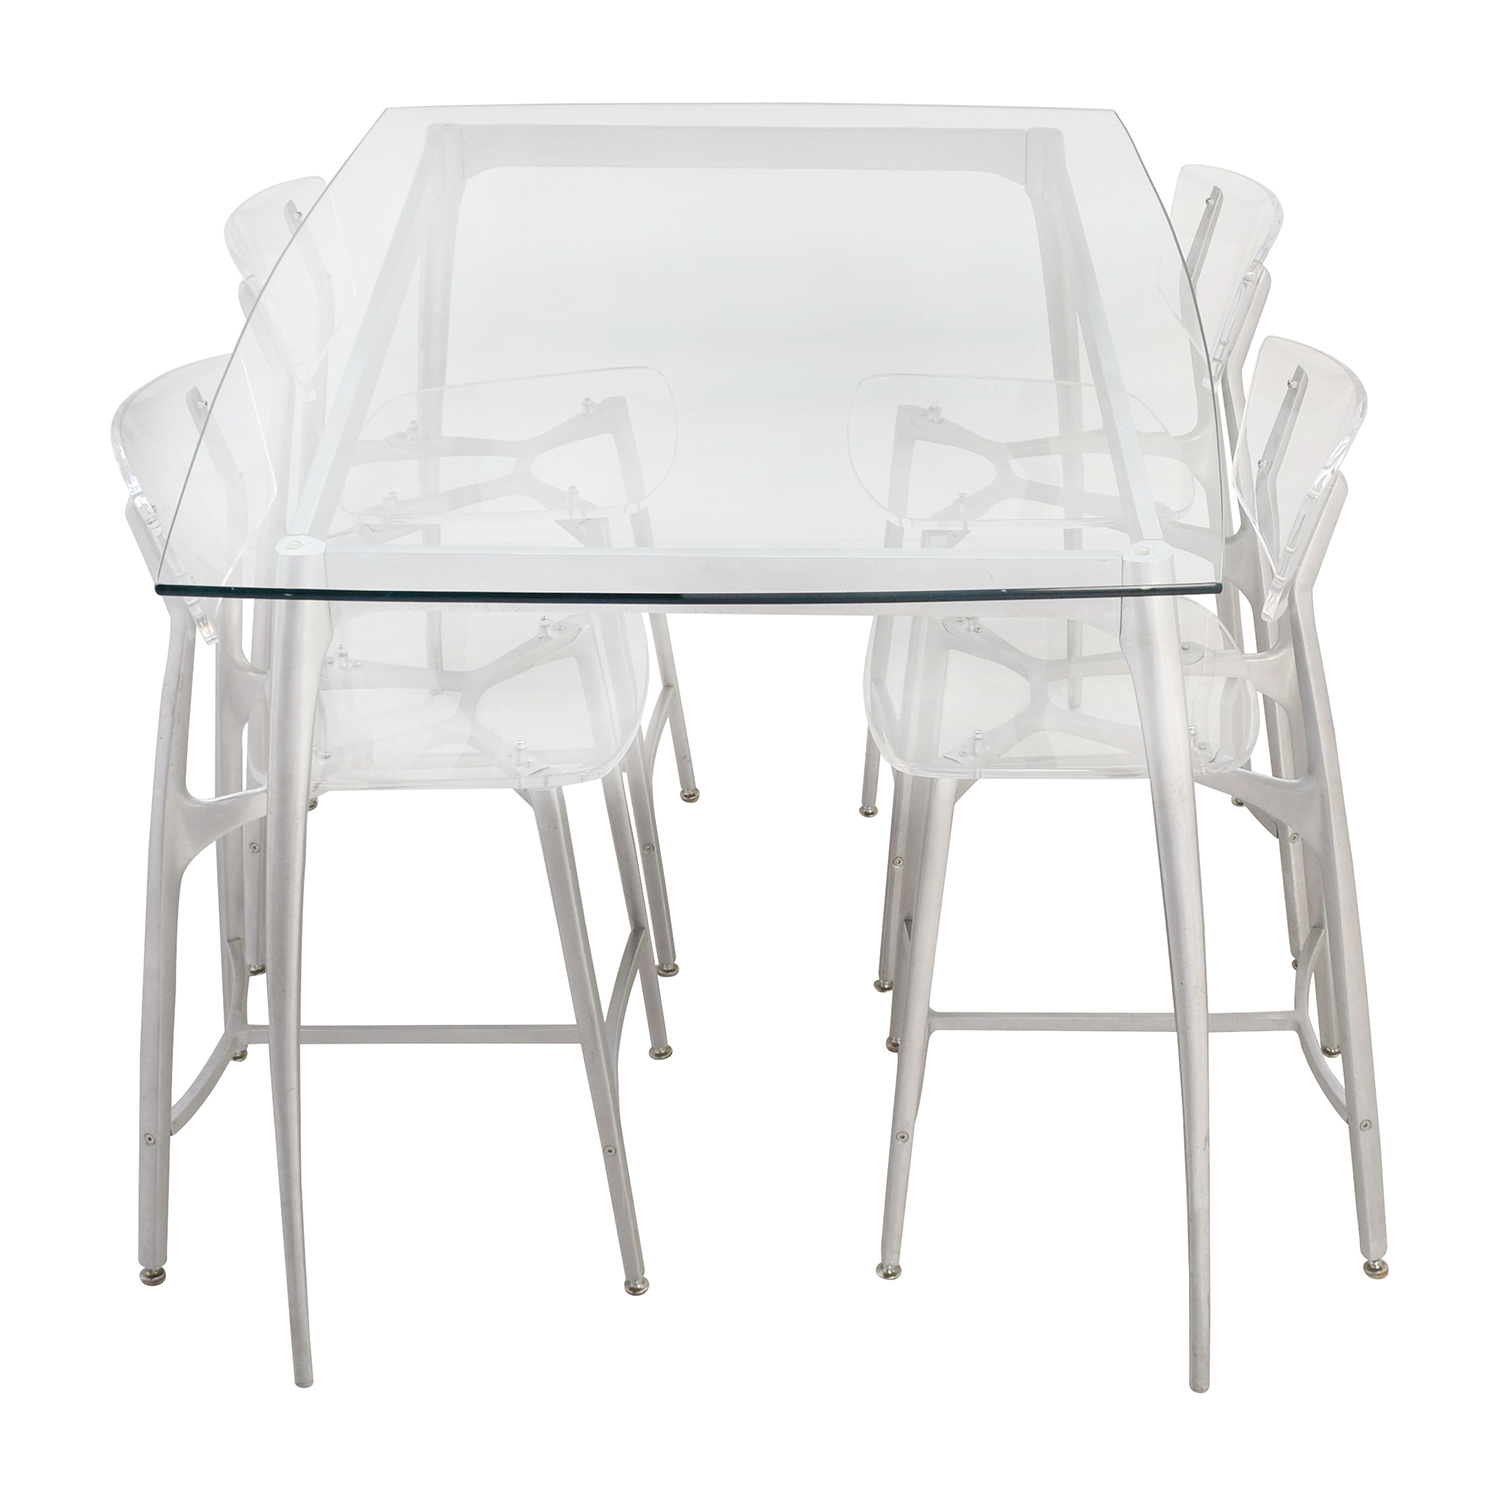 shop Custom Laguna Beach Artist Counter Glass Dining Set online